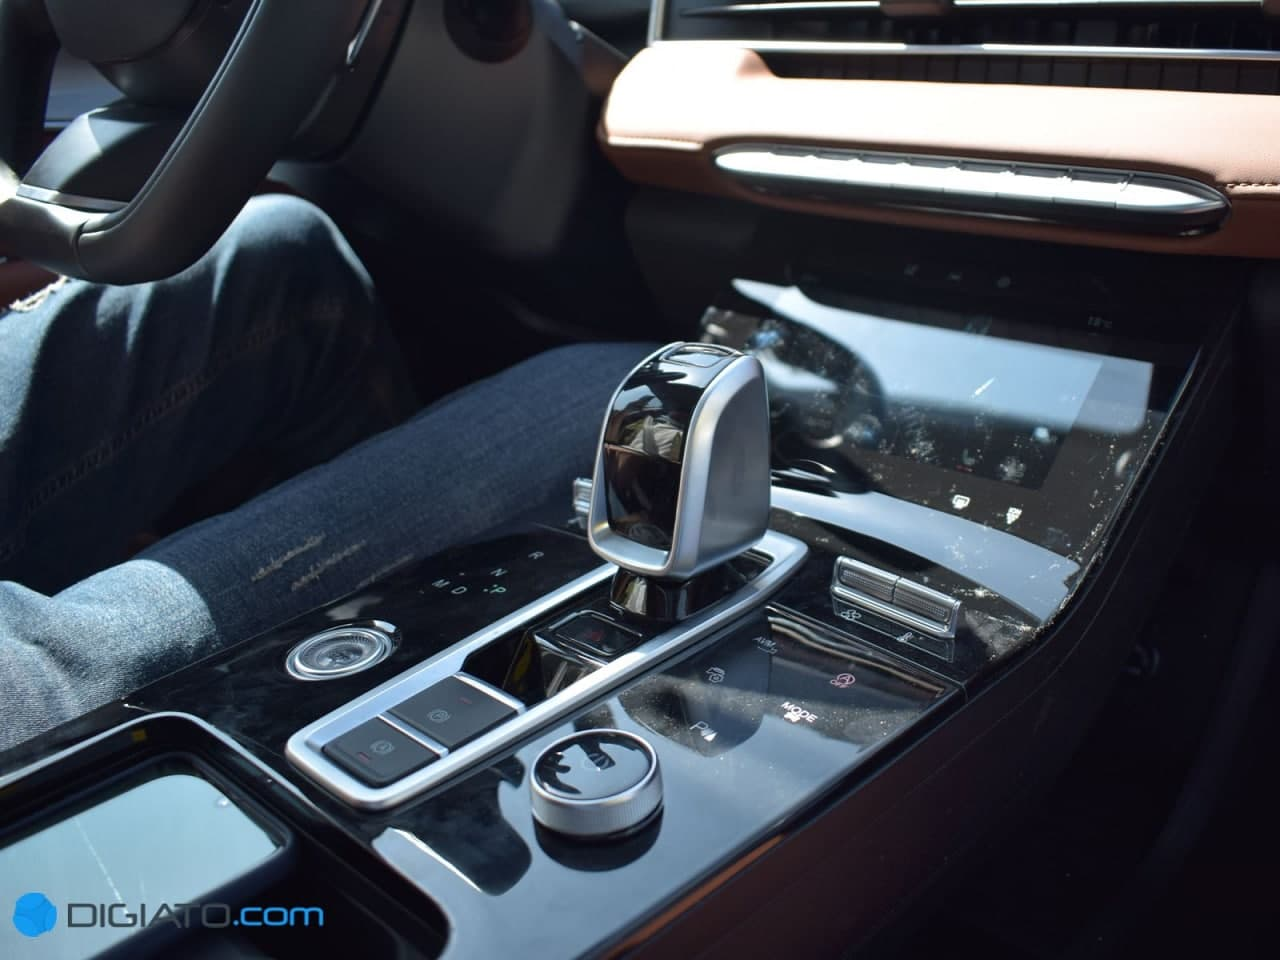 1633971960 937 Chery Tigo 8 Pro officially introduced The most luxurious and Chery Tigo 8 Pro officially introduced; The most luxurious and expensive single-differential chassis on the market 8